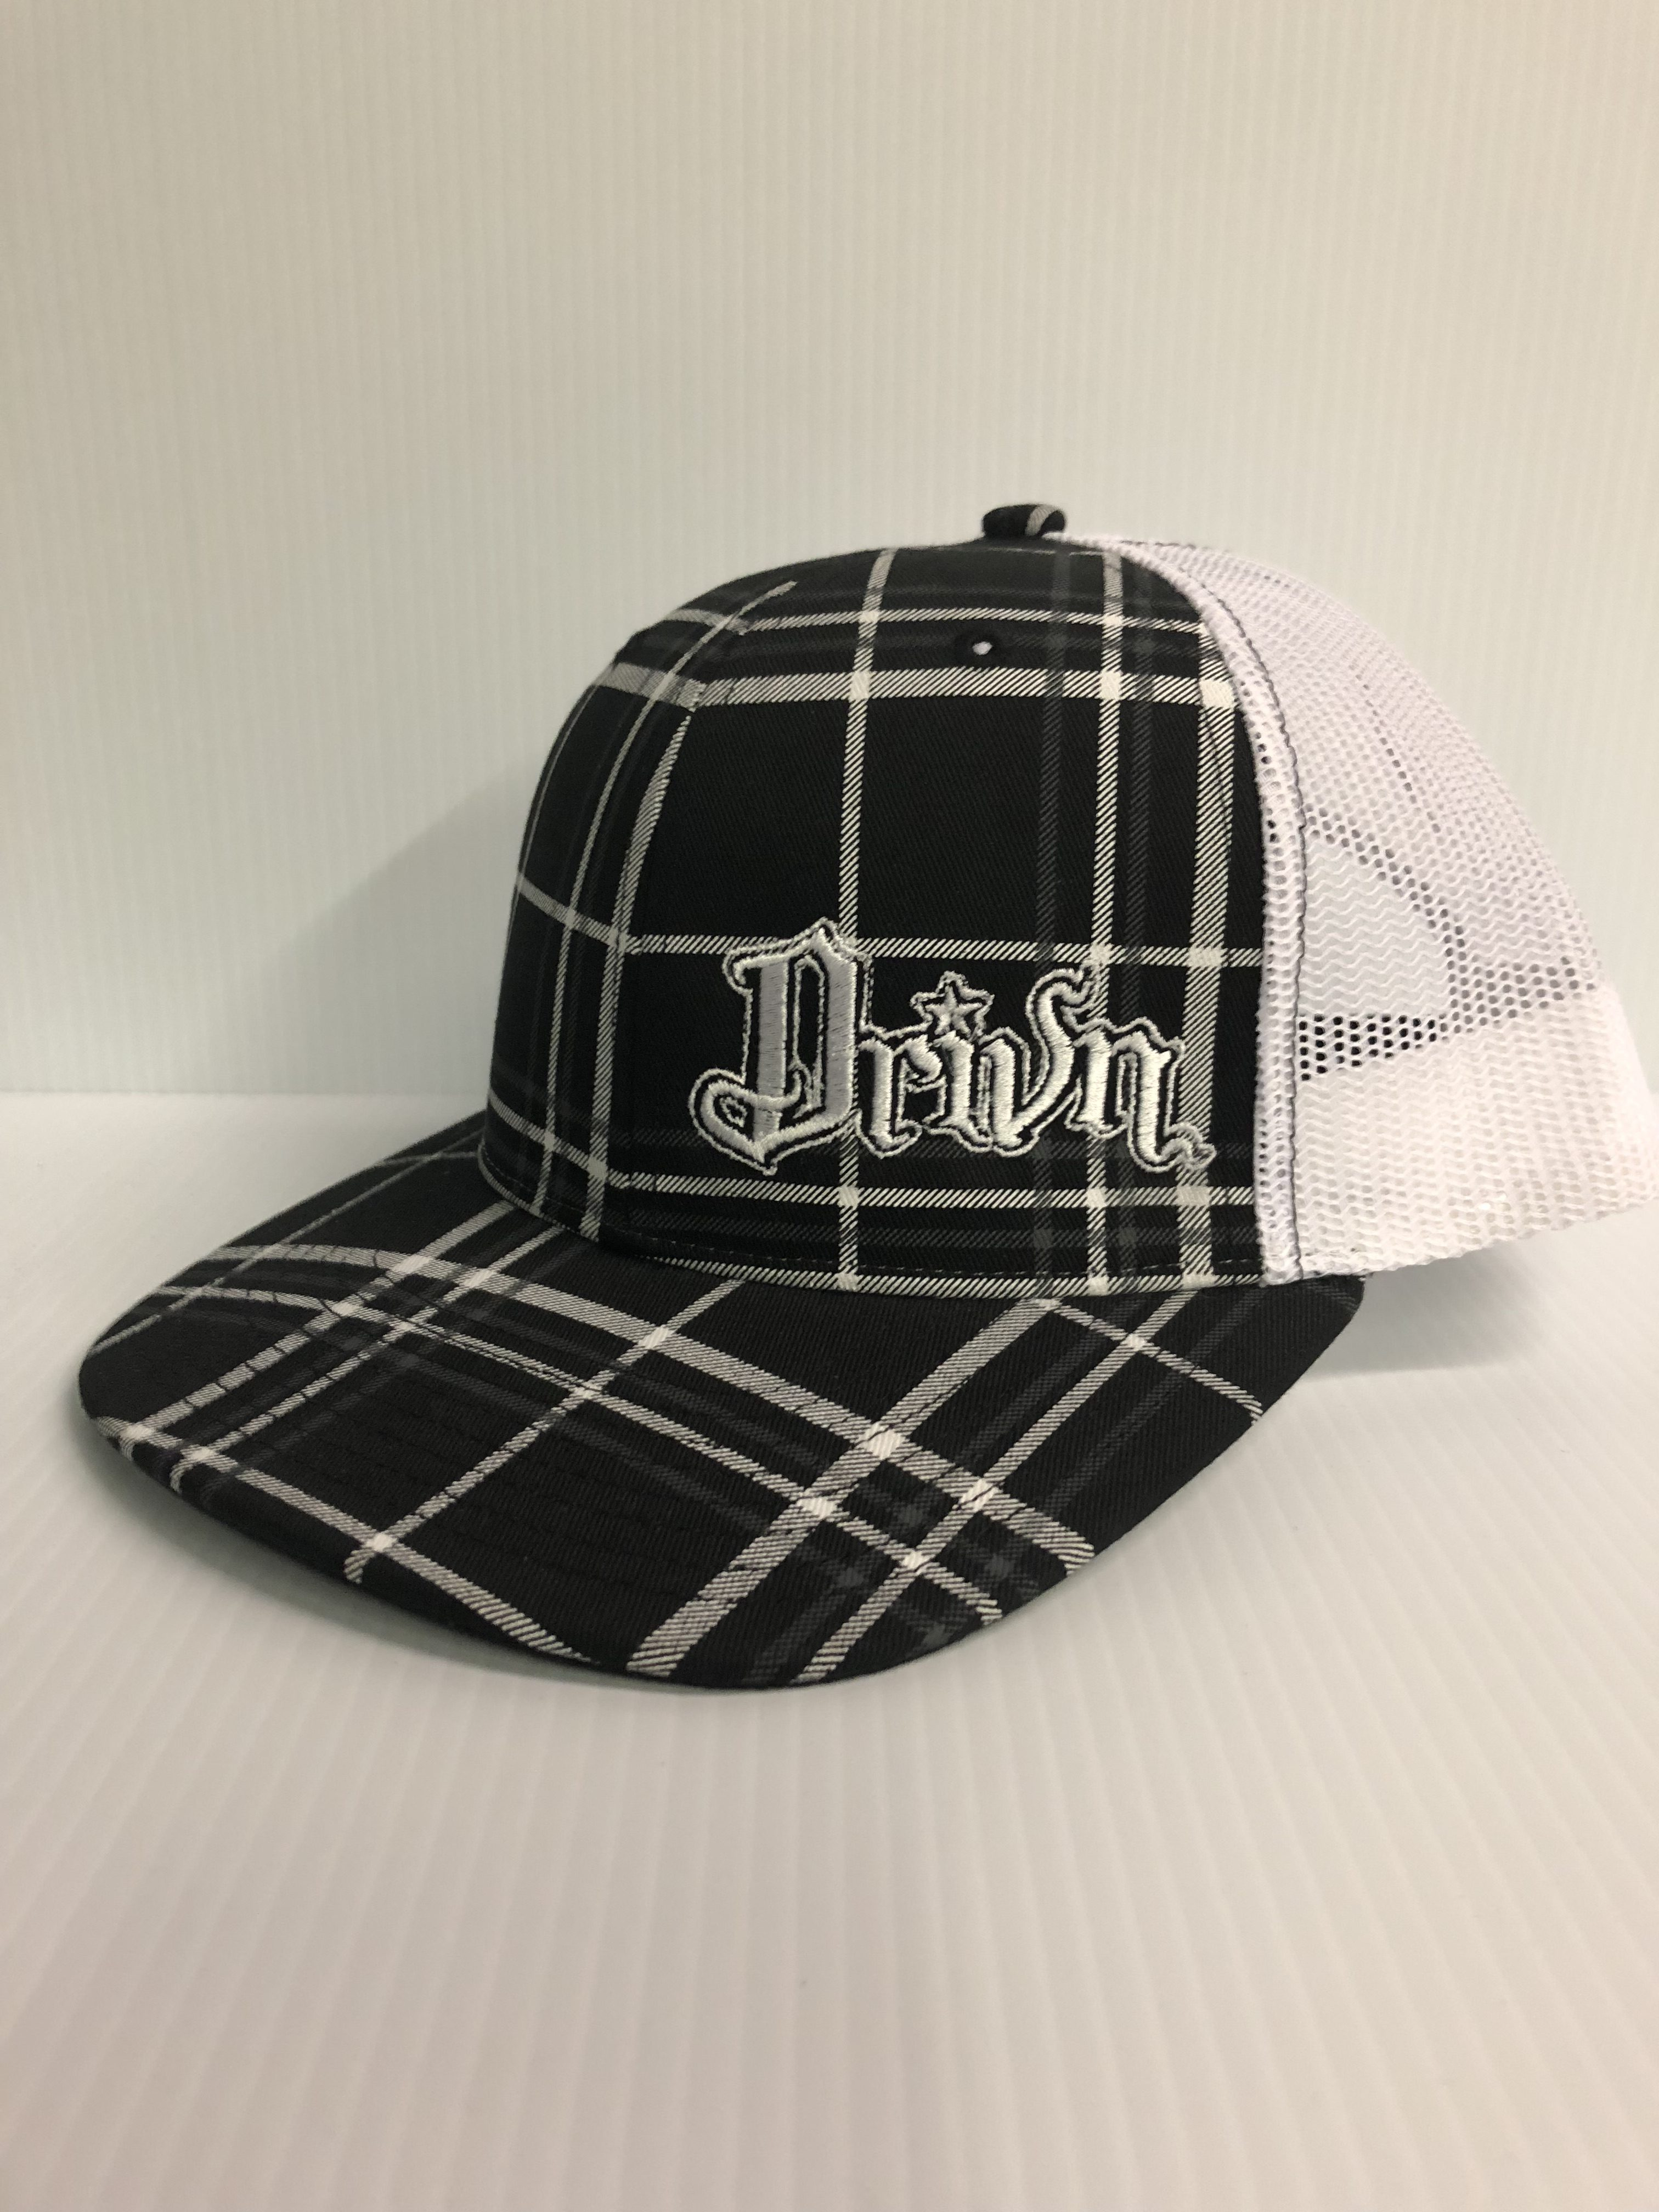 Drivn snap back black and white plaid. $25.00. fuck cancer hat ...